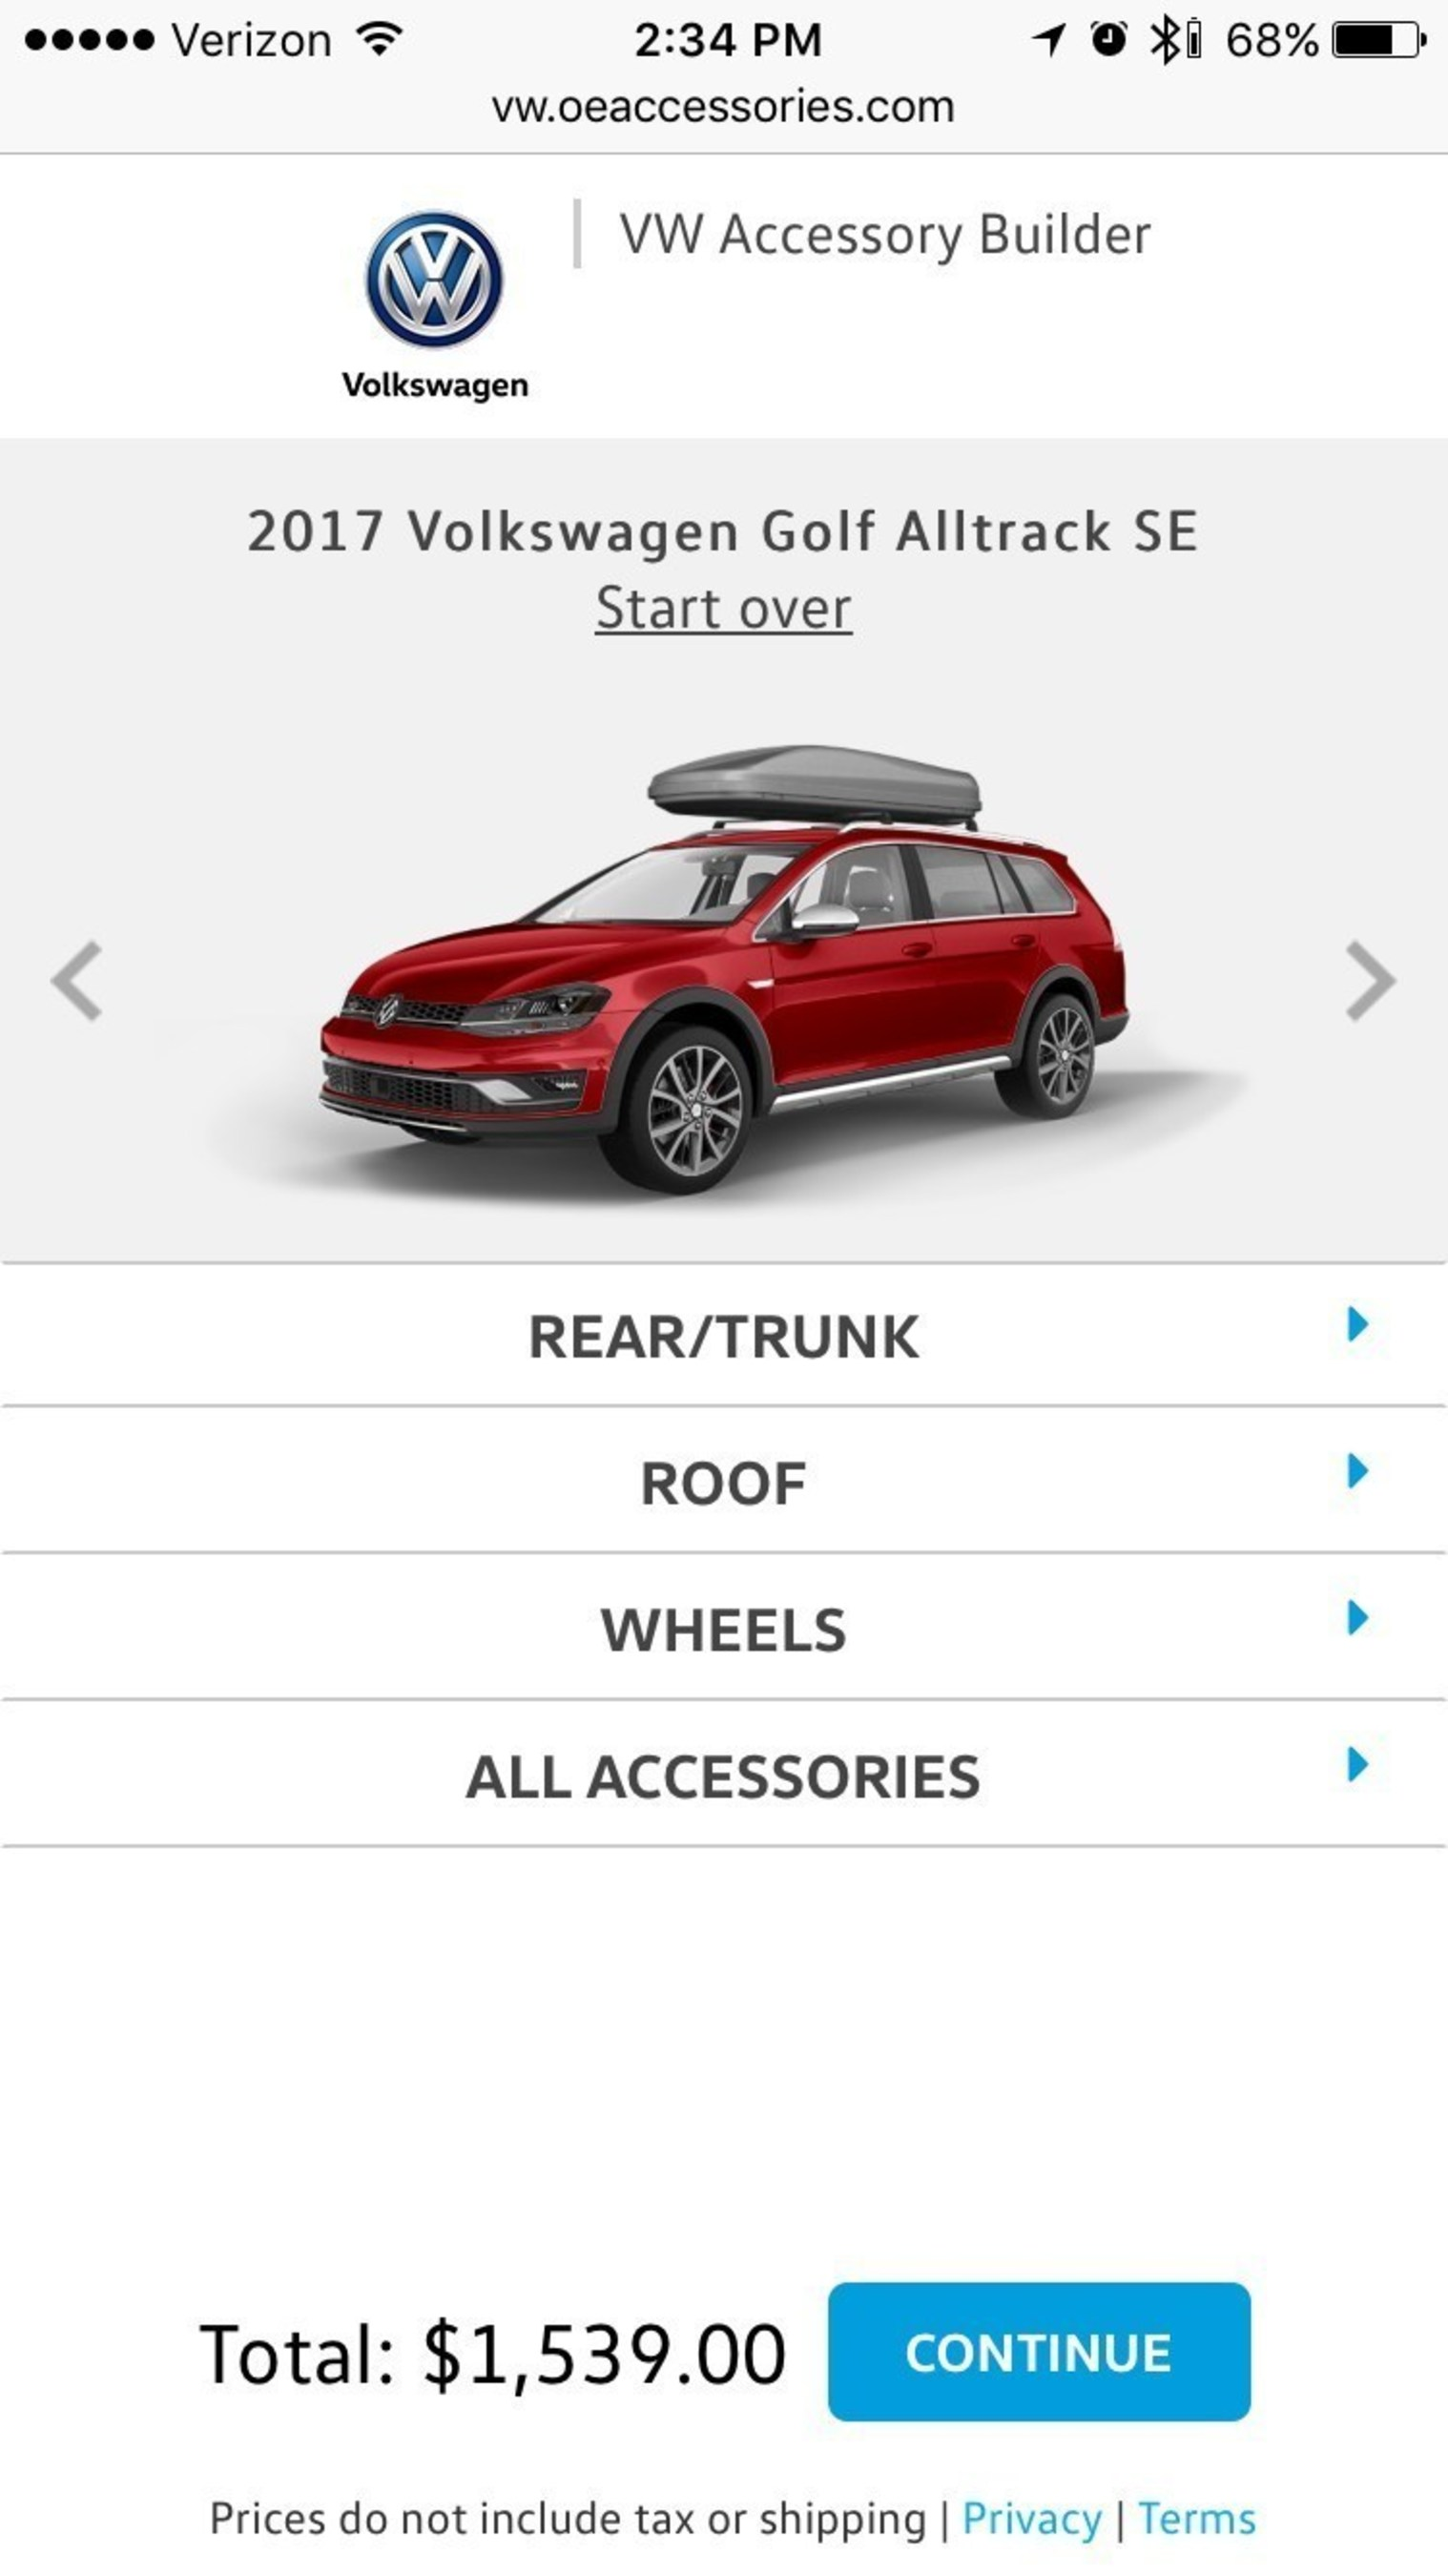 Insignia launches Volkswagen vehicle-to-accessory configurator for